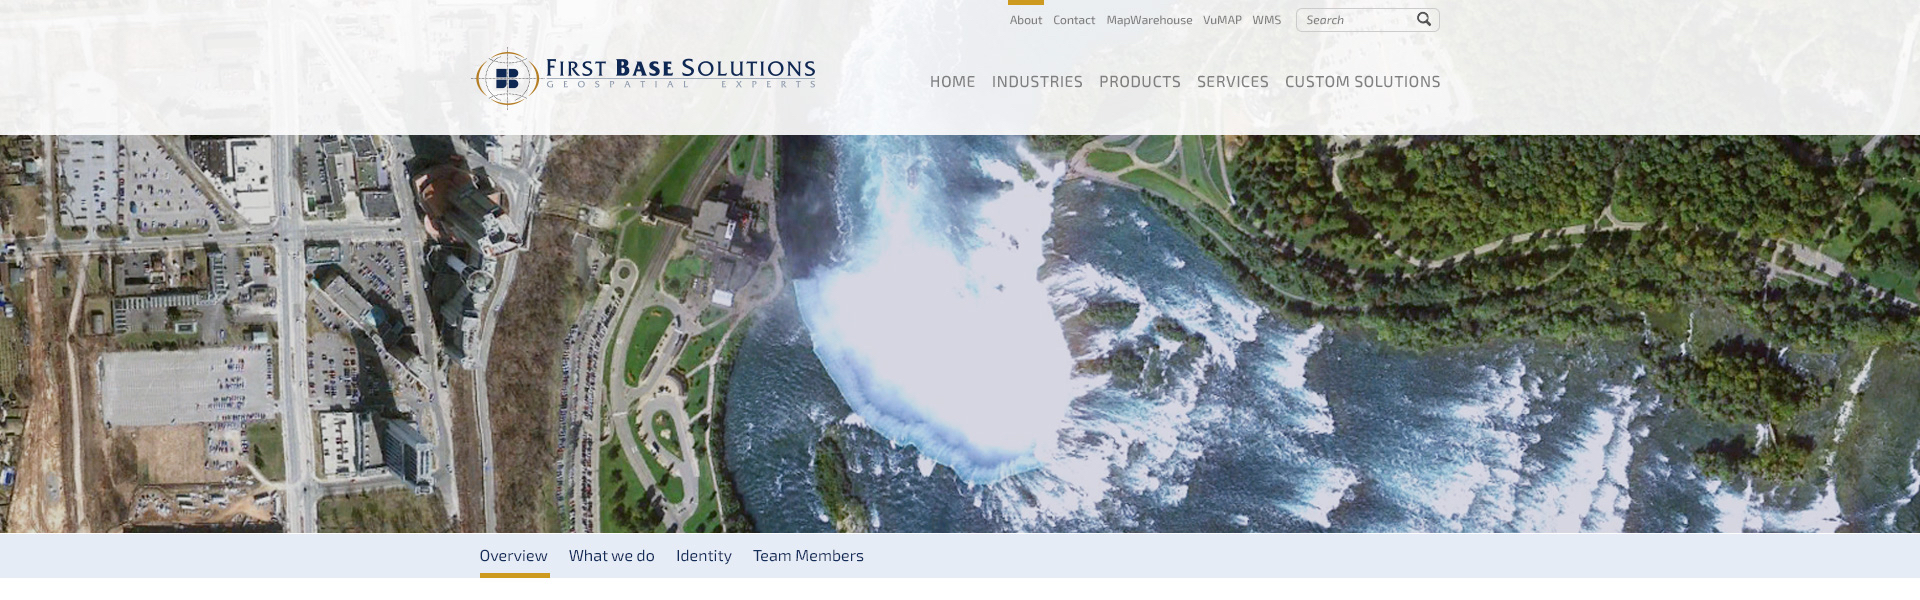 Sample screen grab of the First Base Solutions website design before handing concept files over to their in-house developer.